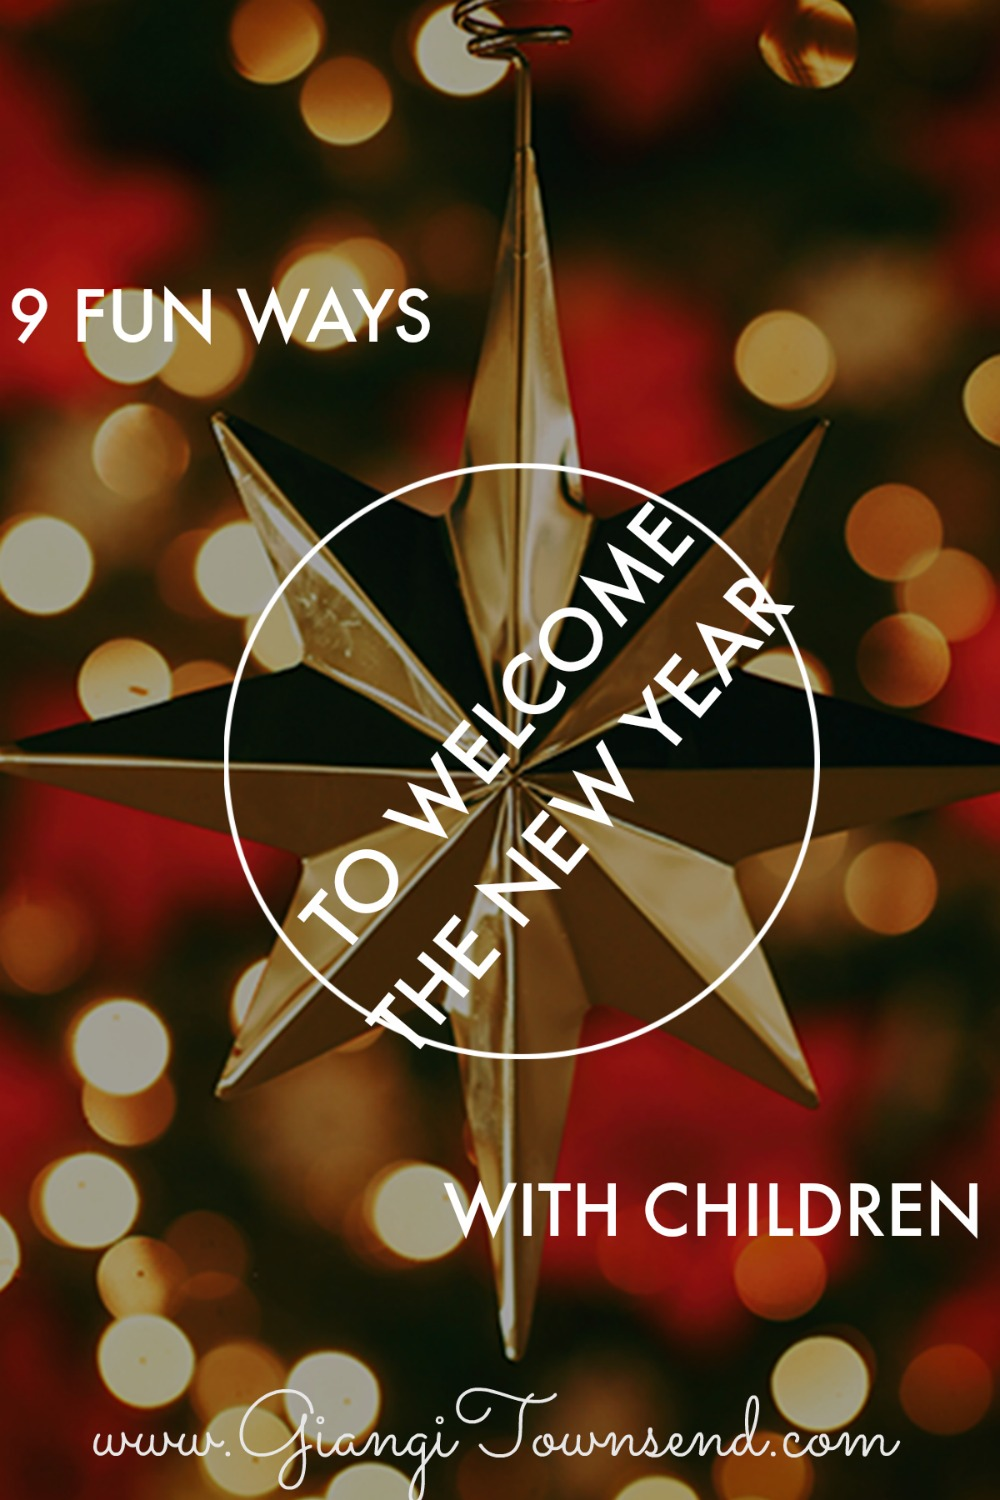 9 fun ways to welcome the new year with children